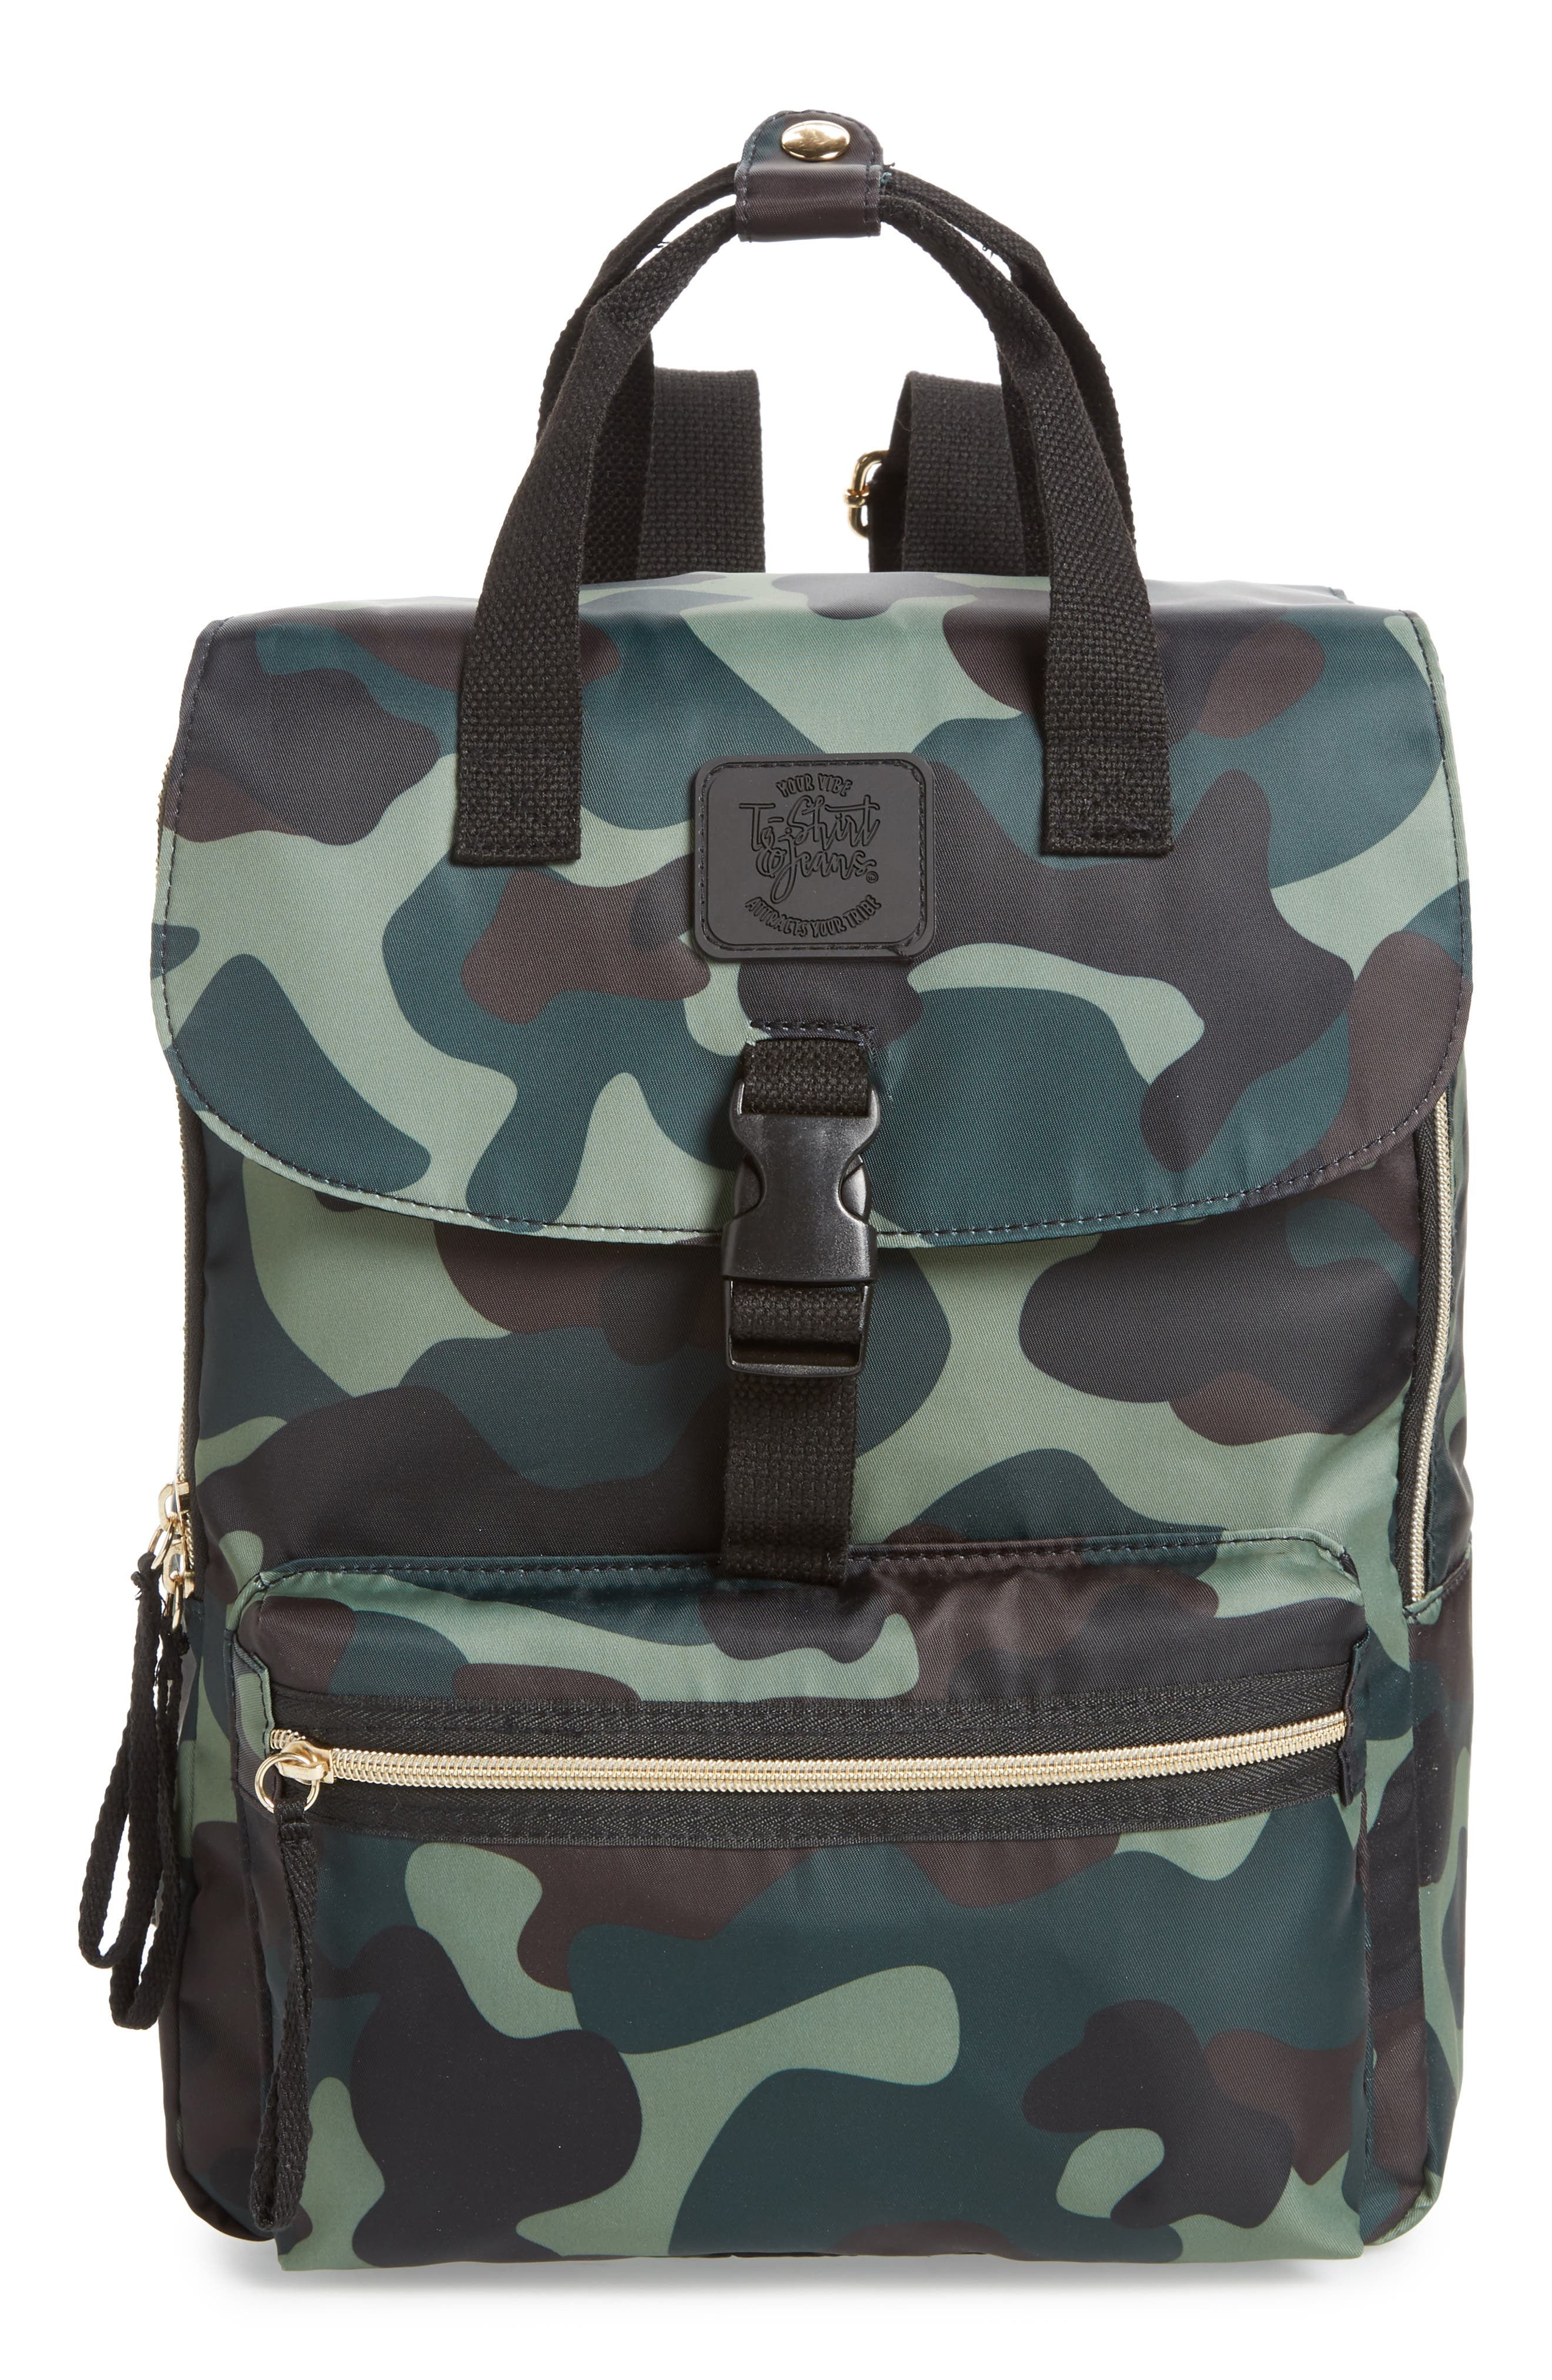 Camouflage Nylon Backpack,                         Main,                         color, Camo Green